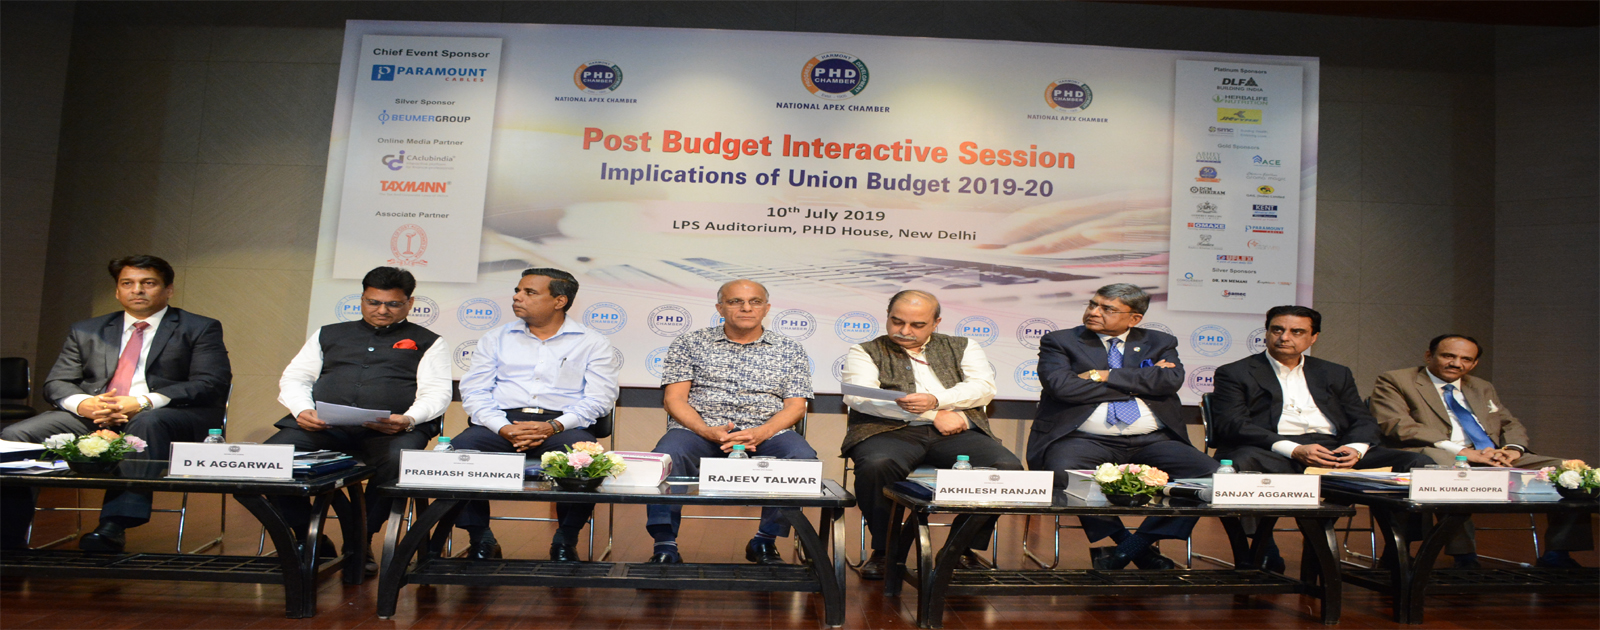 Post Budget Interactive Session – Implications of Union Budget 2019-20